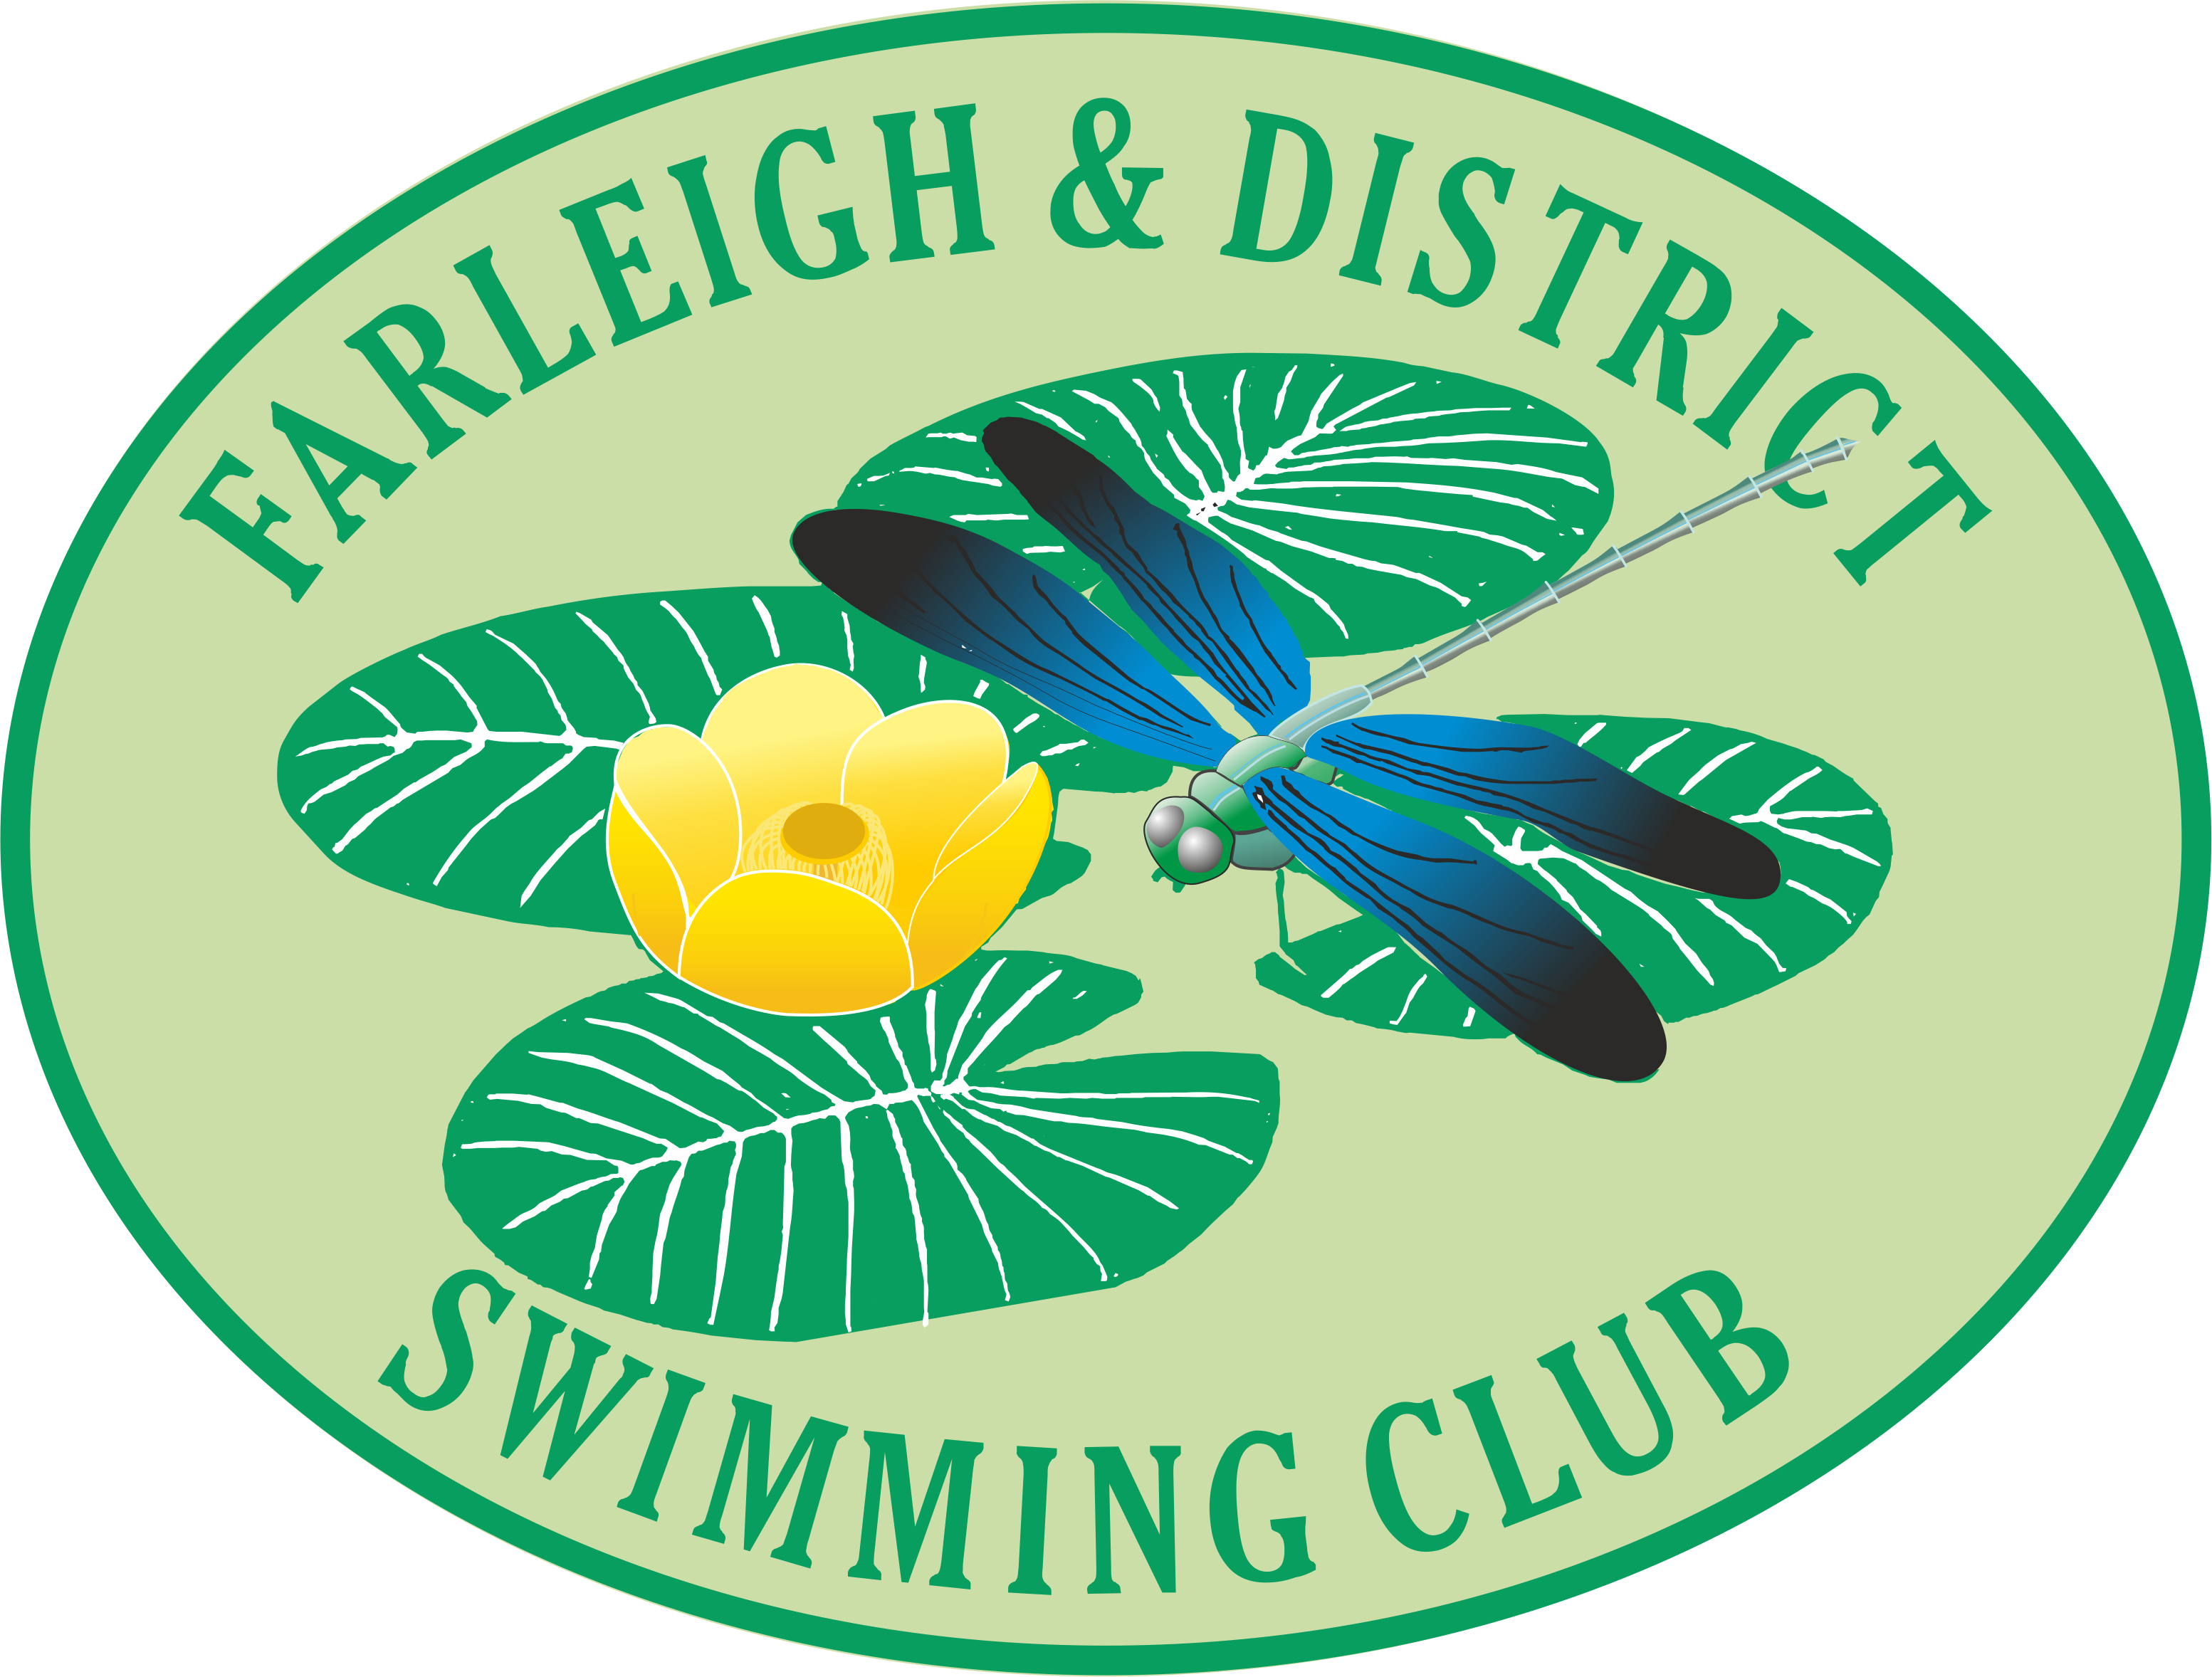 "Founded in 1933, the Farleigh & District Swimming Club is believed to be the oldest river swimming club in the country. This is the original ""wild swimming club""."